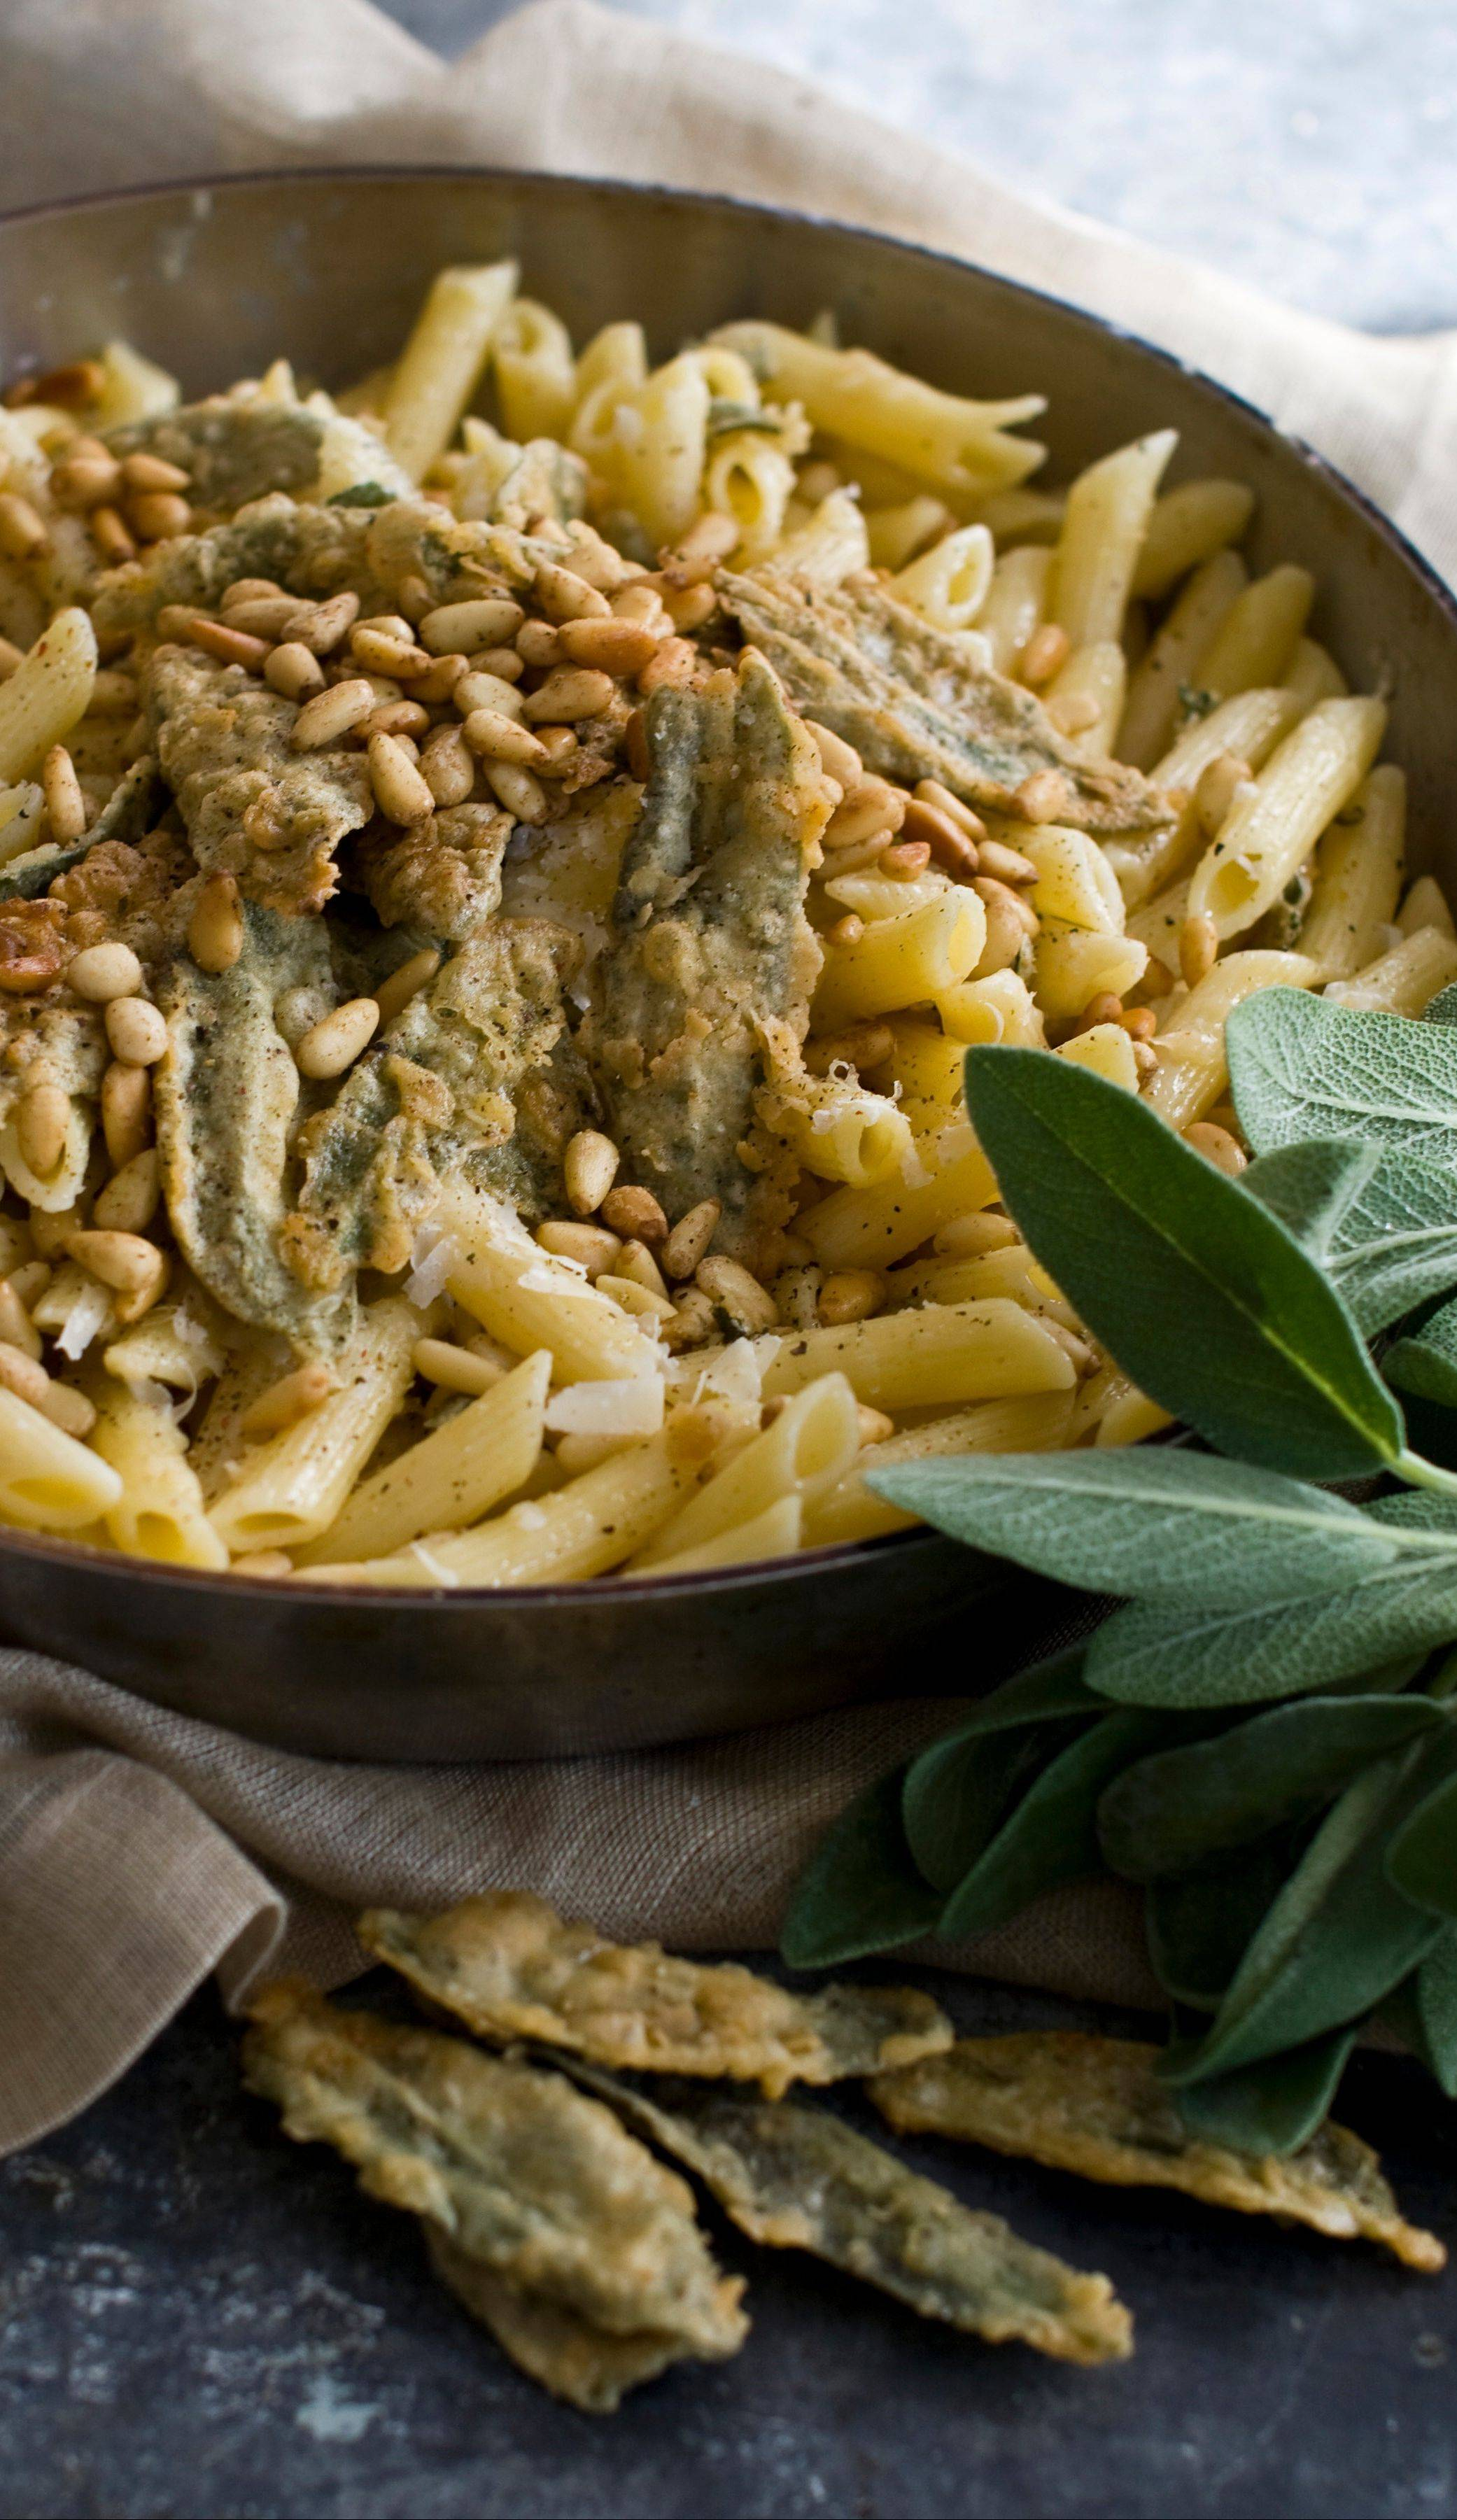 Fried sage loves fat, making it perfect partners for butter and parmesan in this hearty penne dish.